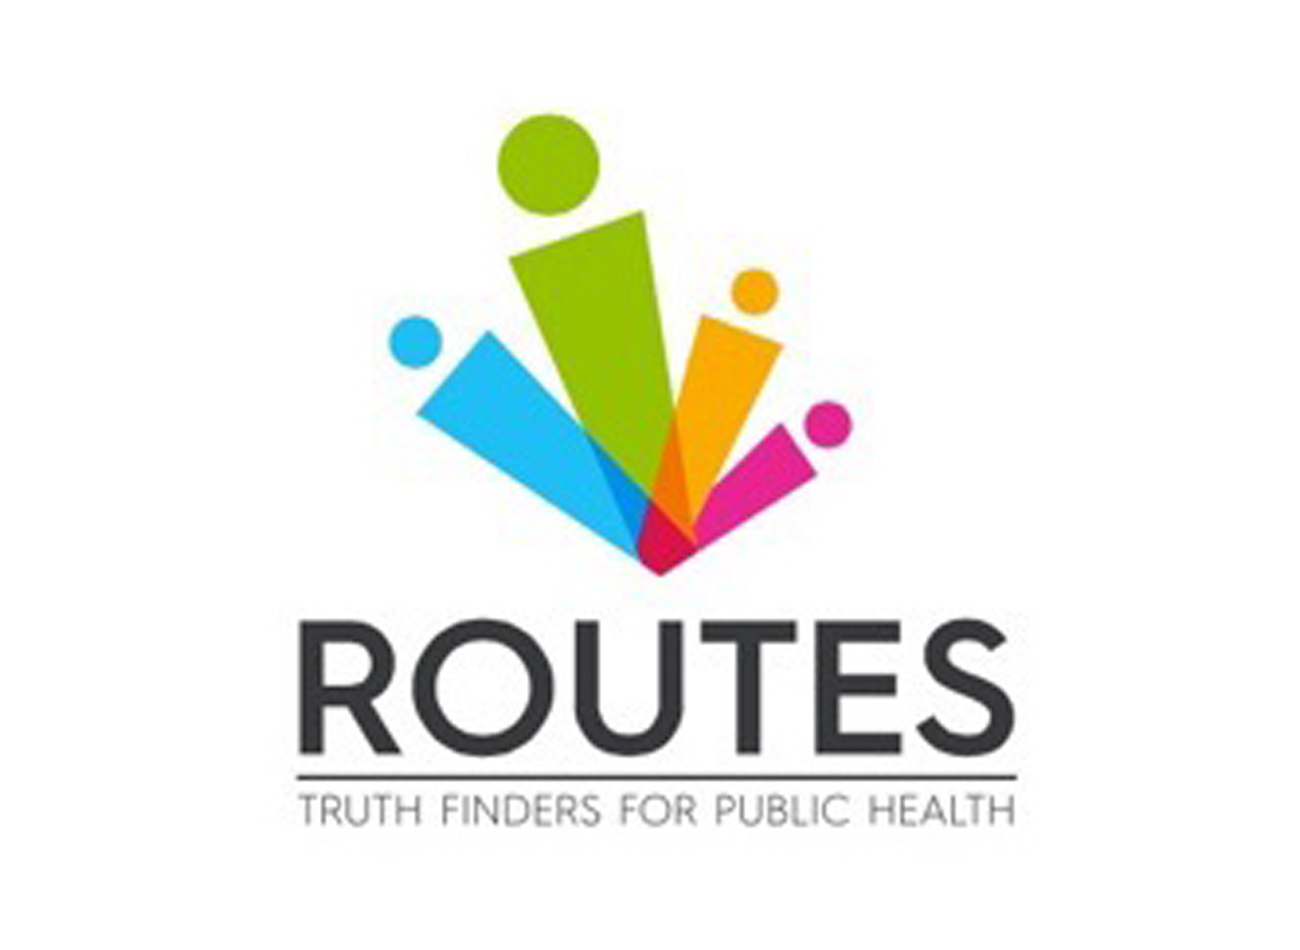 routes-to-results-ngo-iconic-logo-by-designers-agent-orange-design-johannesburg.jpg